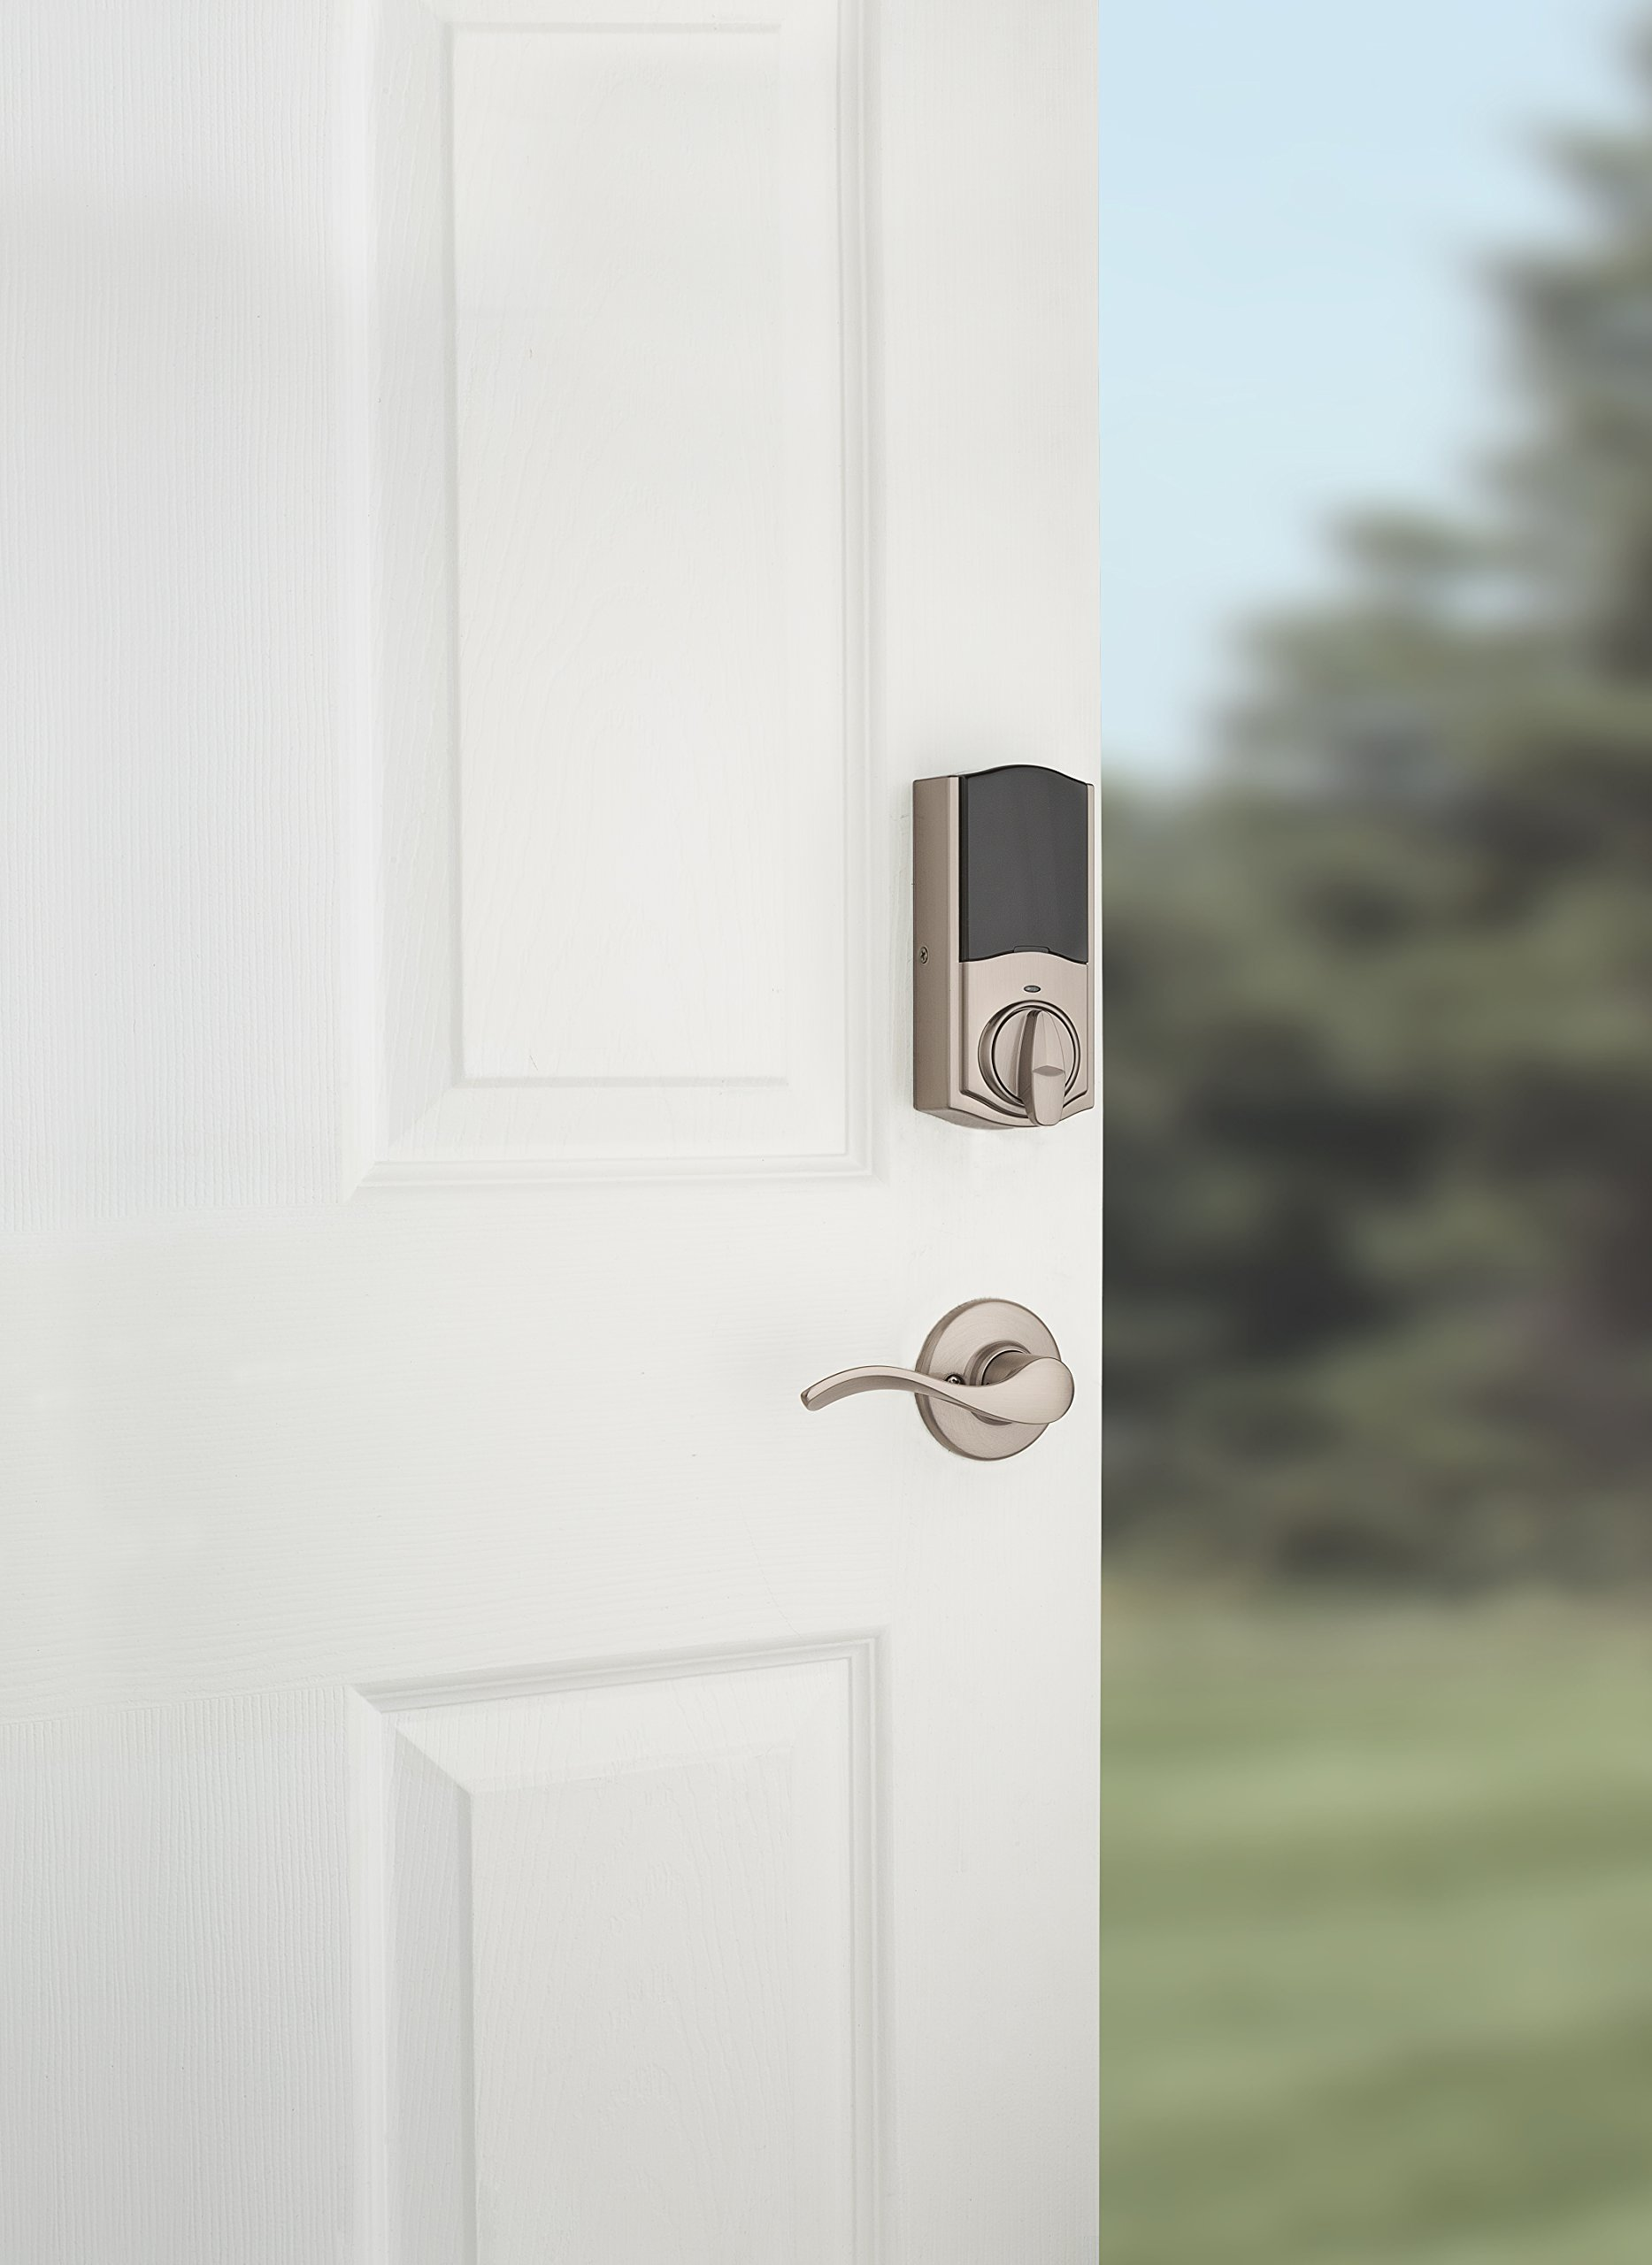 Kwikset 888ZW500-15S Smartcode 888 Electronic Deadbolt with Z-Wave Technology by Kwikset (Image #6)